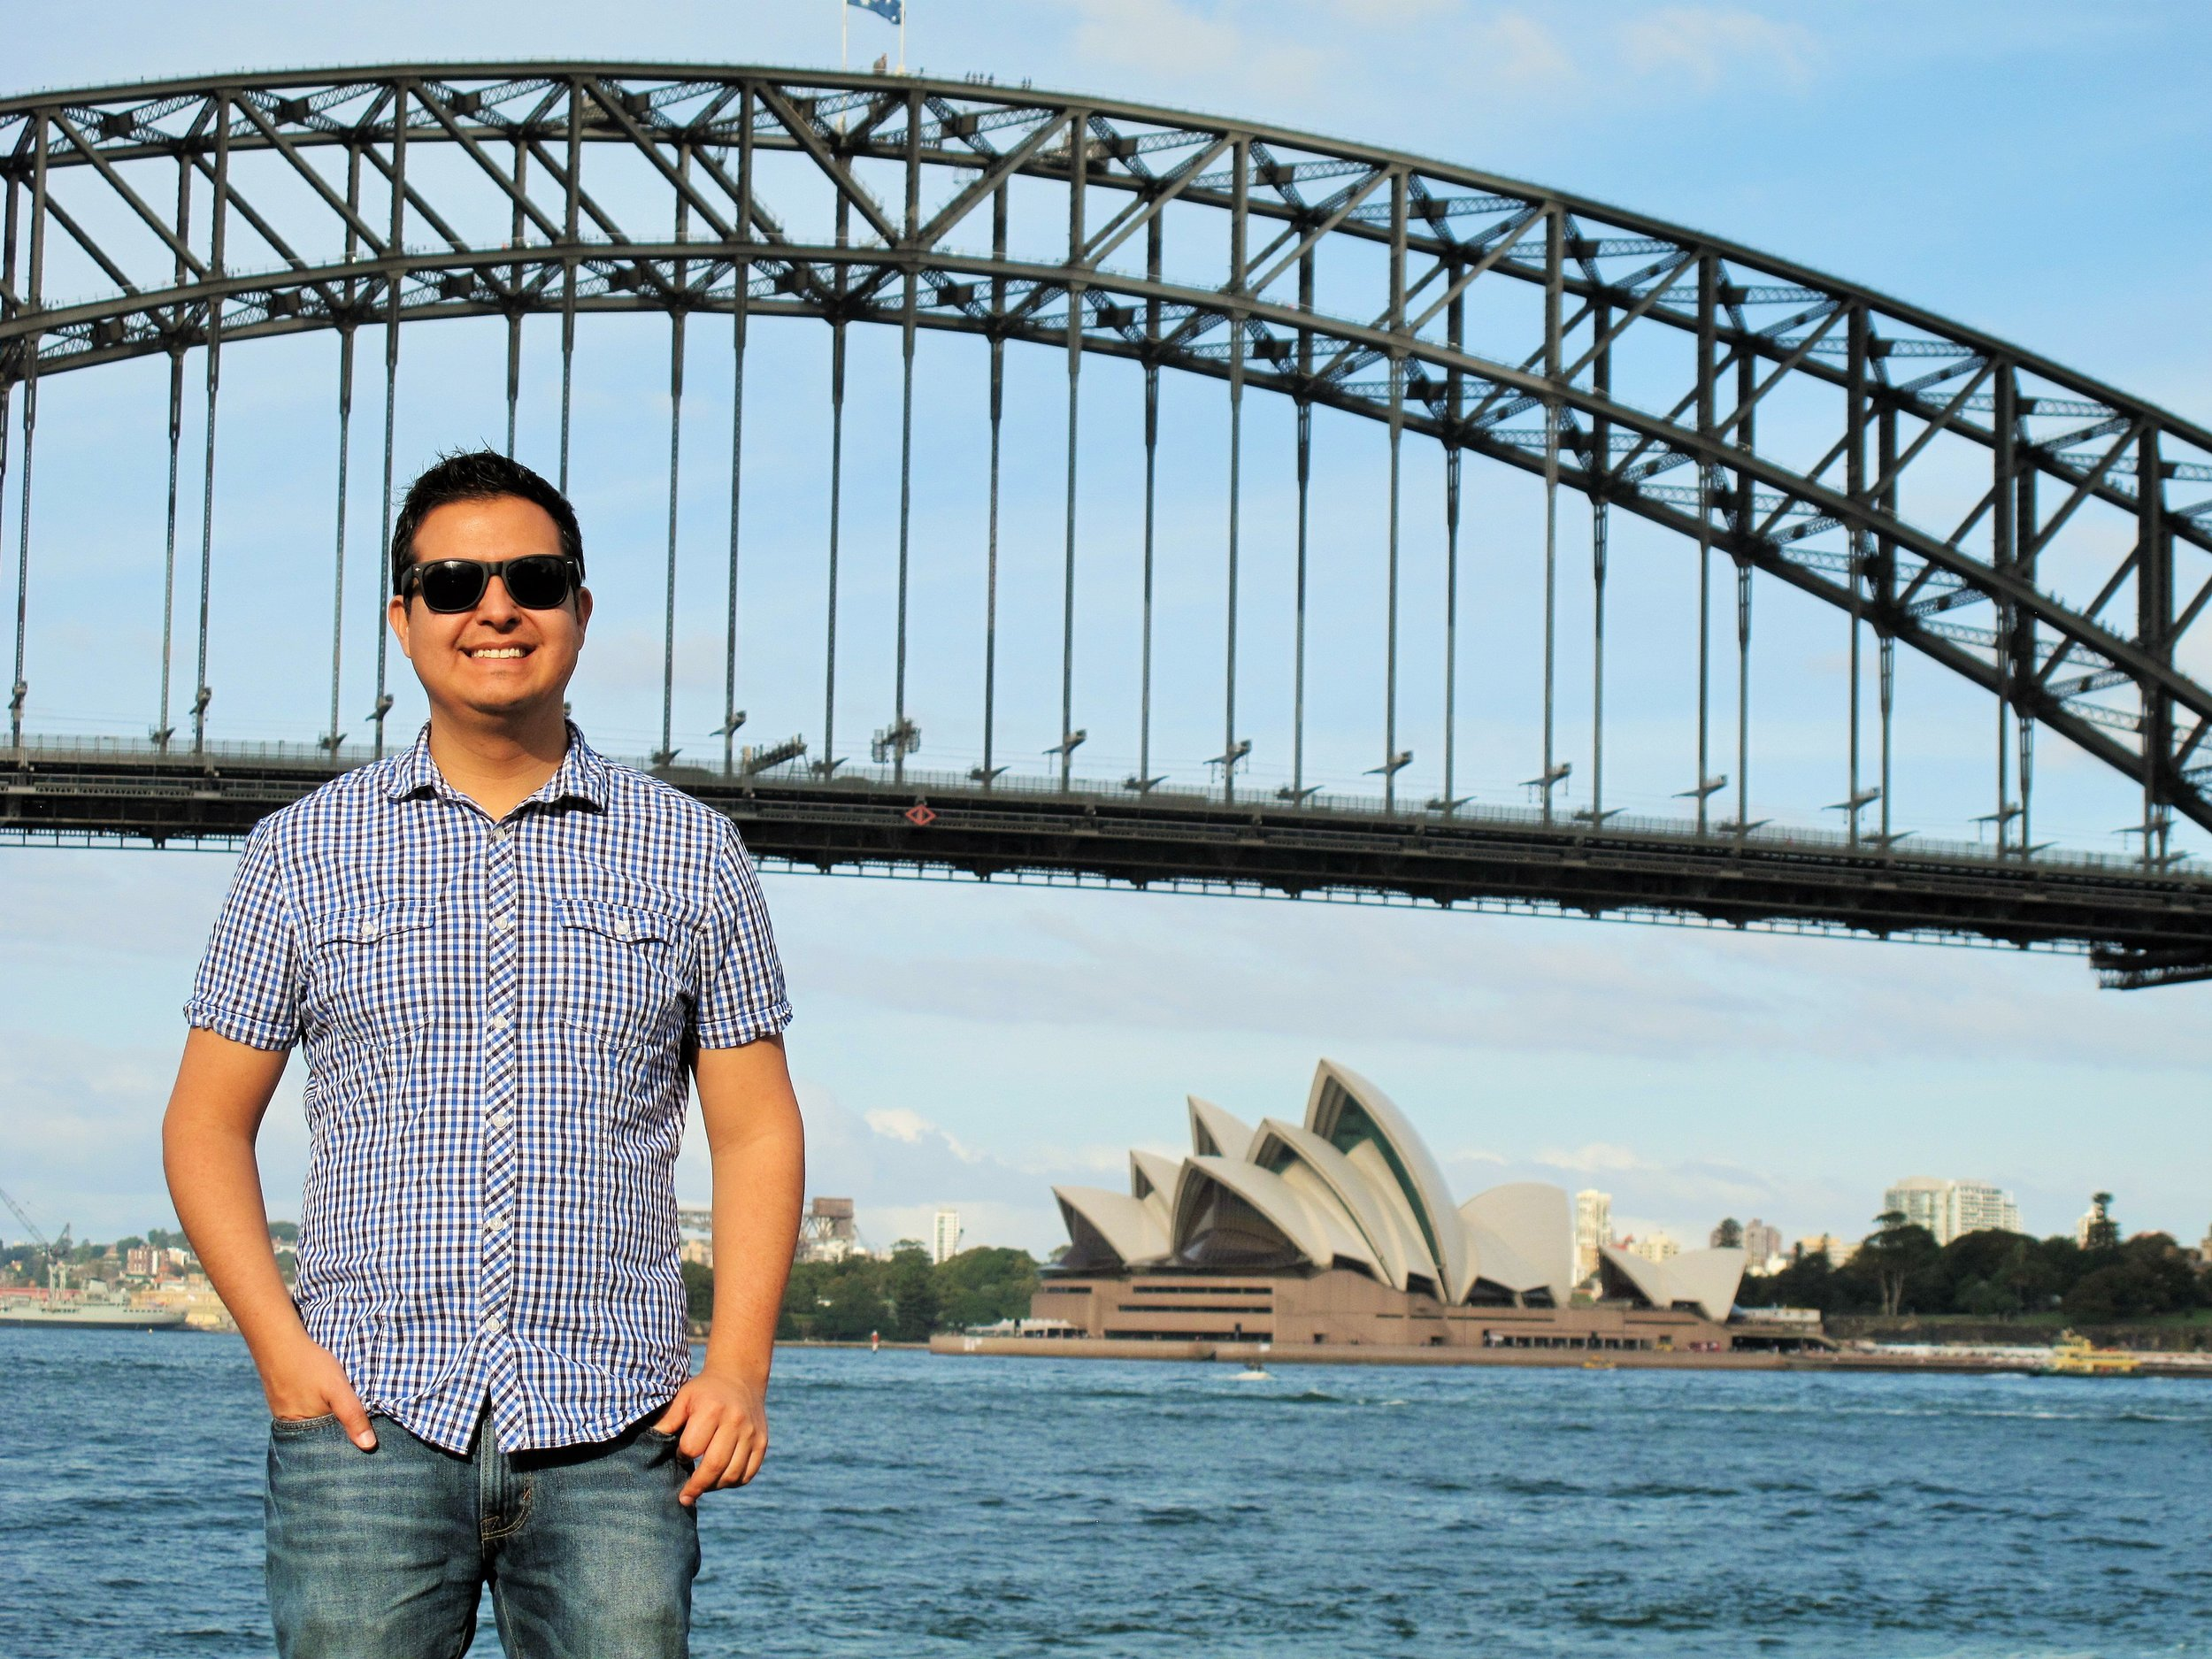 Roberto in front of the two Sydney's iconic symbols (when he arrived to Australia)